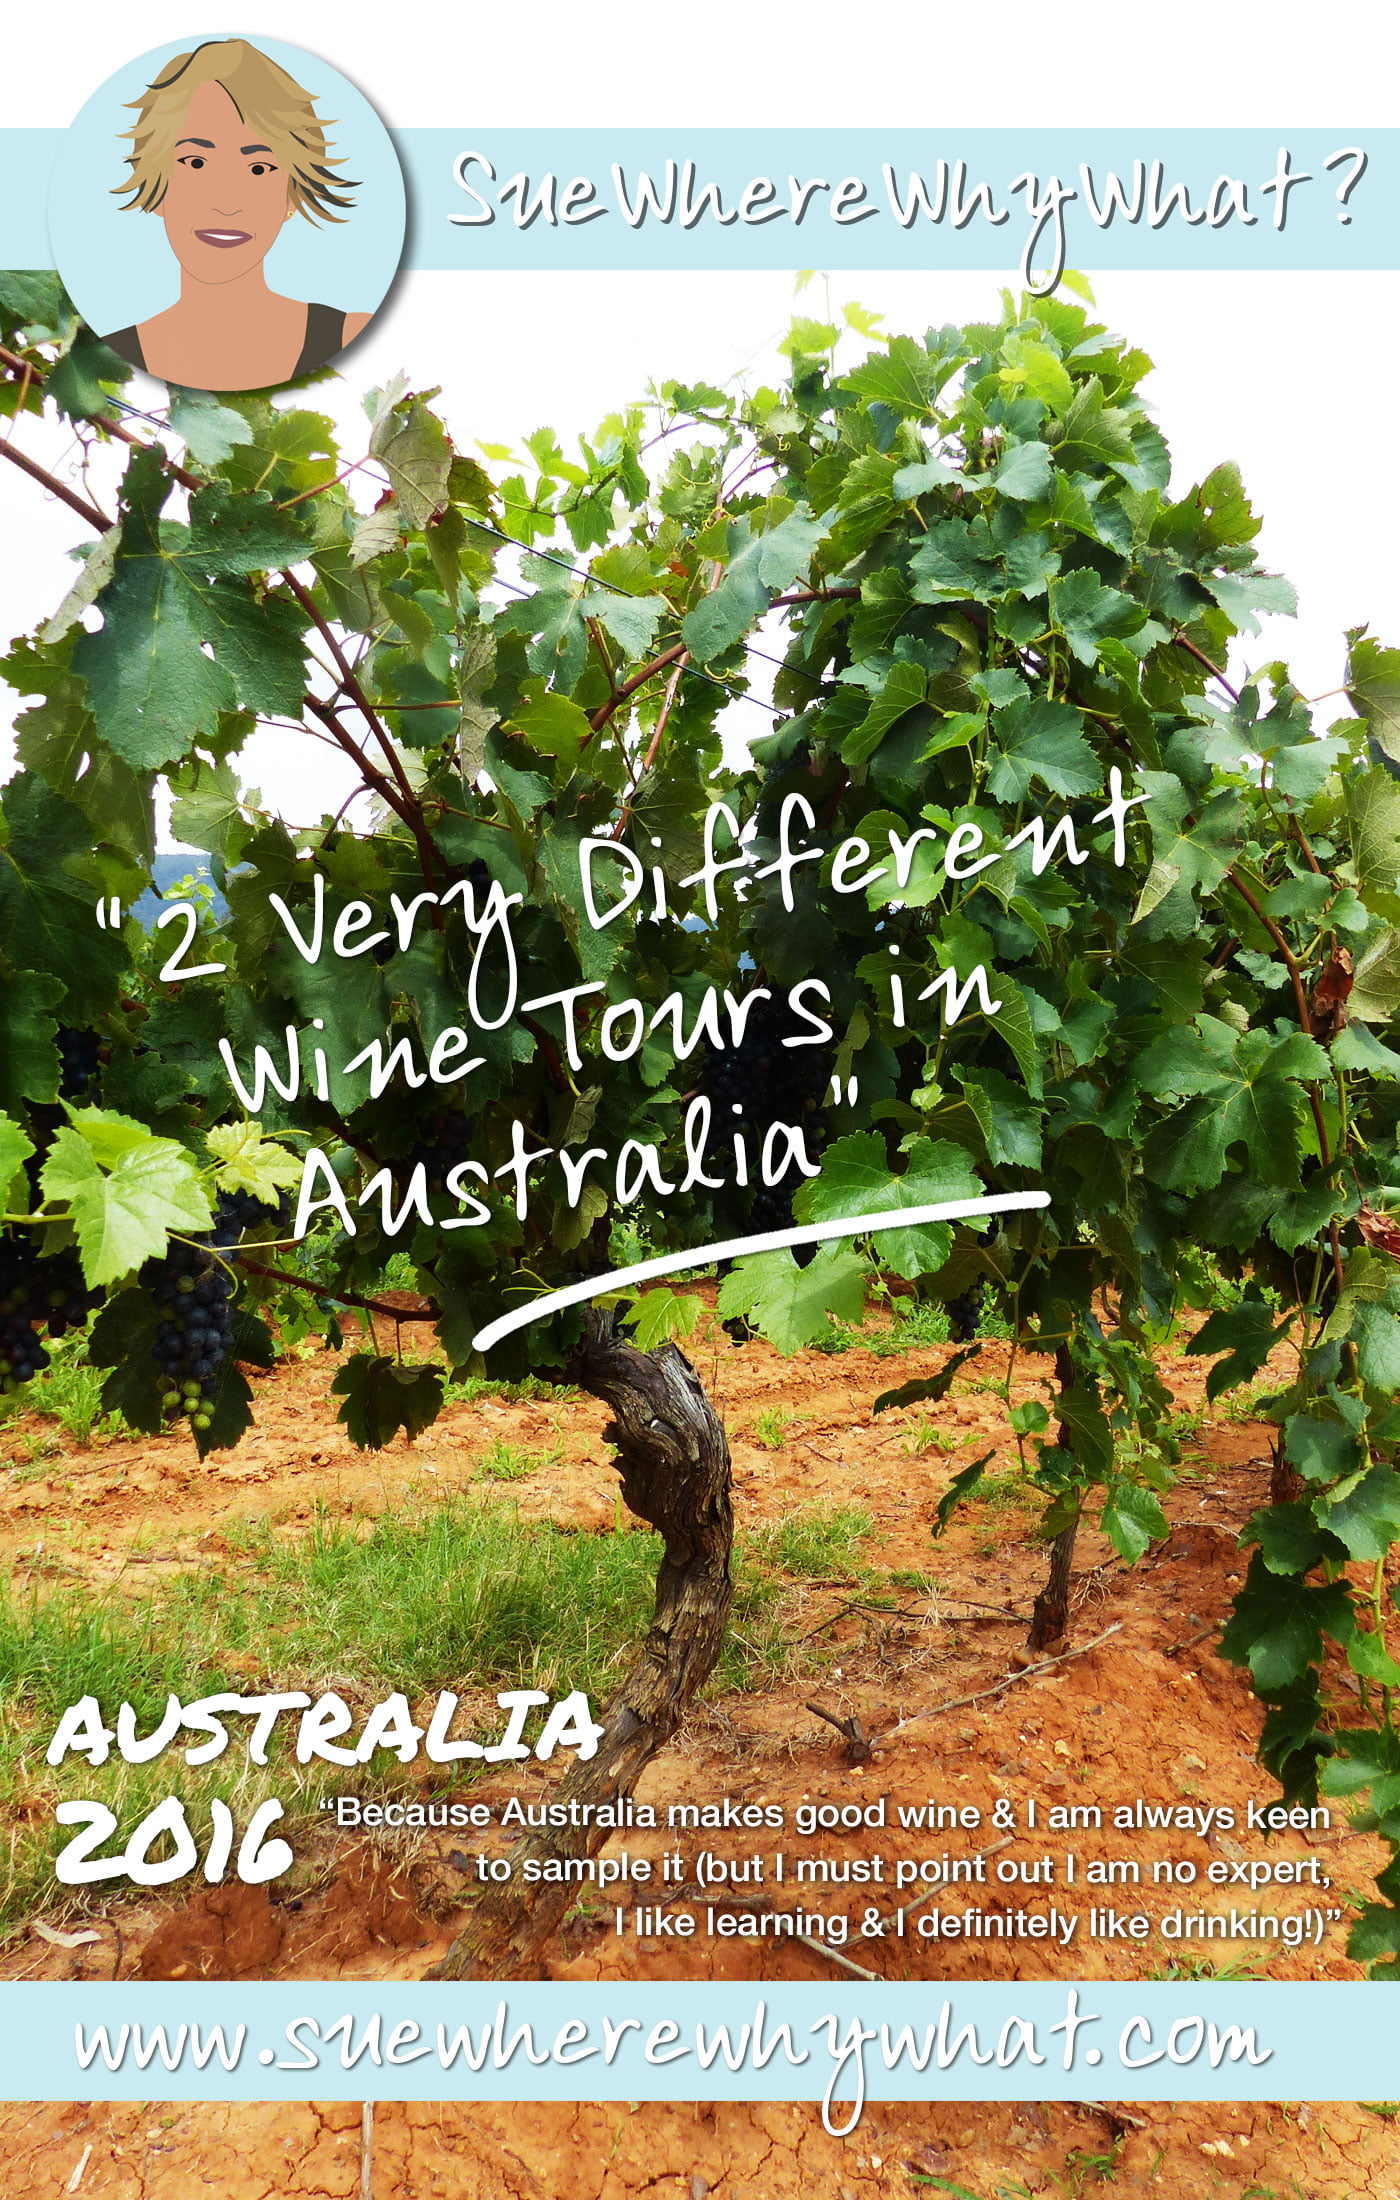 2 Very Different Wine Tasting Tours in Australia. Features Hunter Valley & Margaret River regions.  https://www.suewherewhywhat.com/activities/day-trips/2-very-different-wine-tasting-tours-in-australia